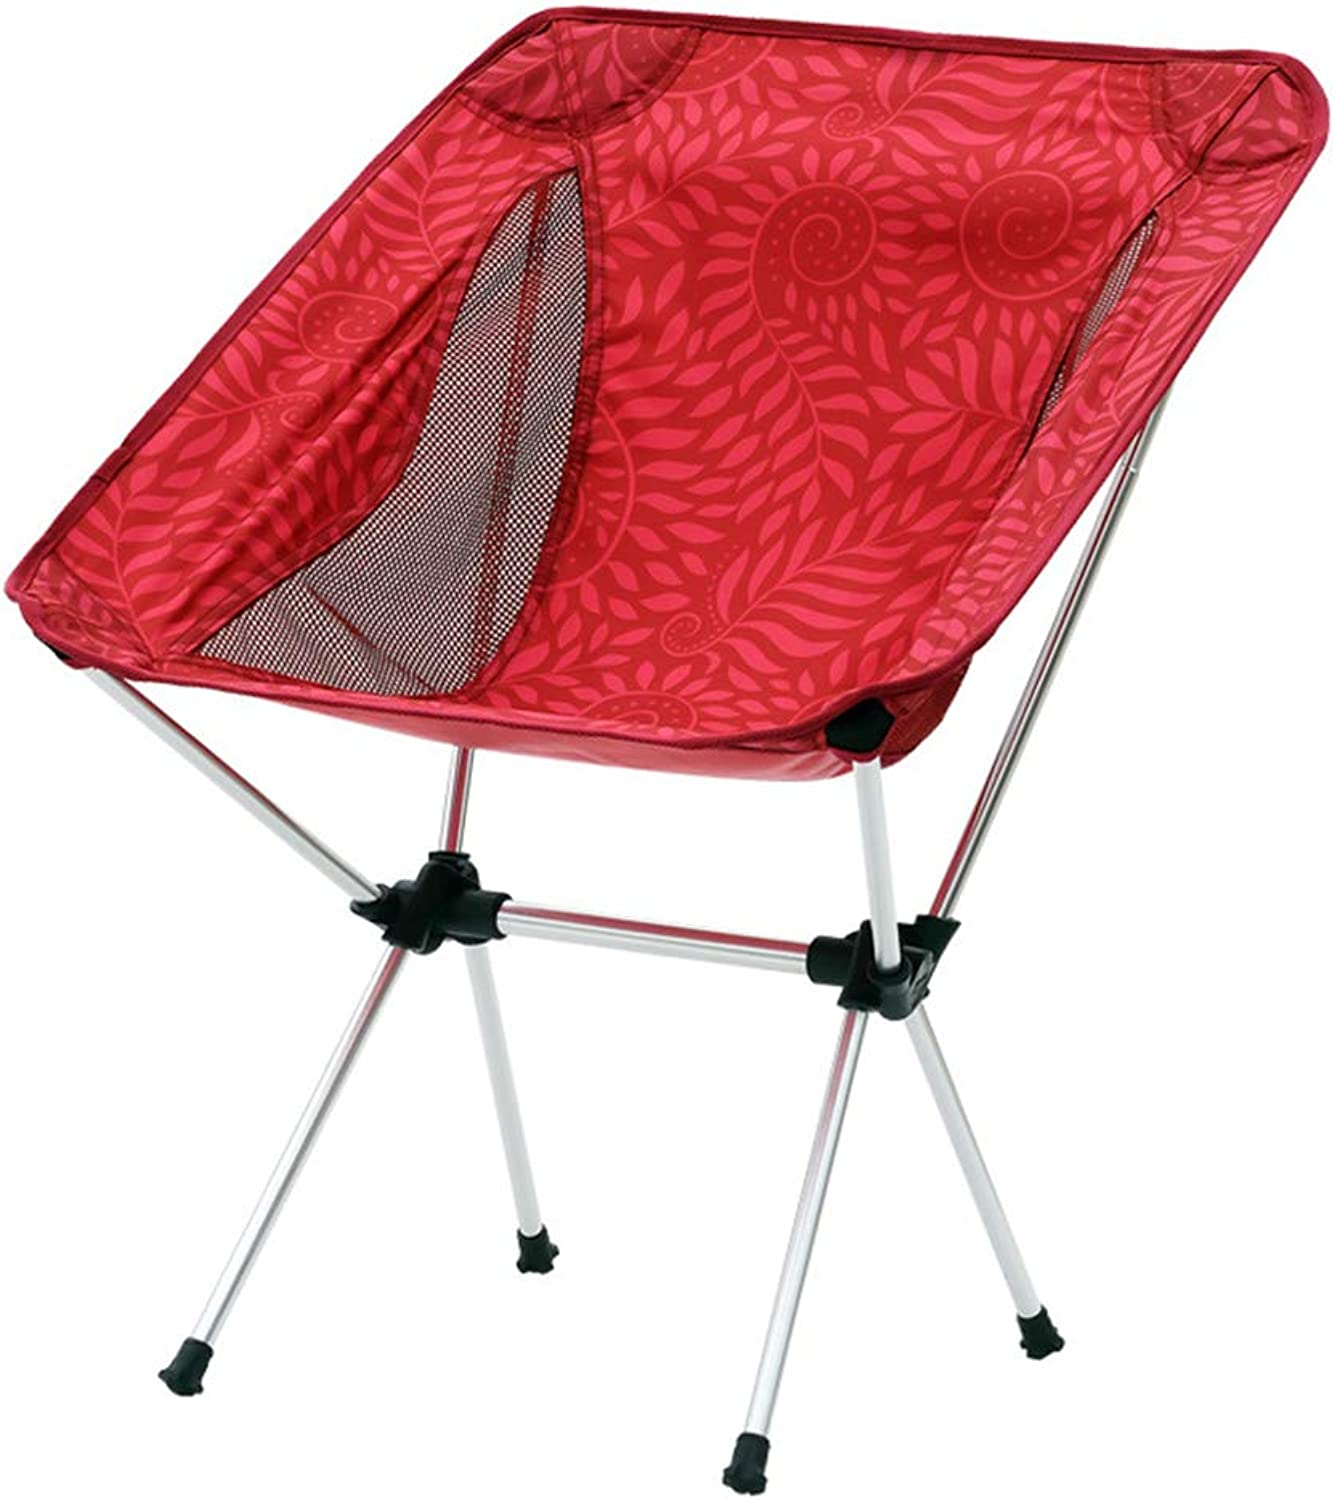 Compact Camping Chair, Portable Ultralight Folding Backpacking Chairs, Beach Chair Heavy Duty 300 lb